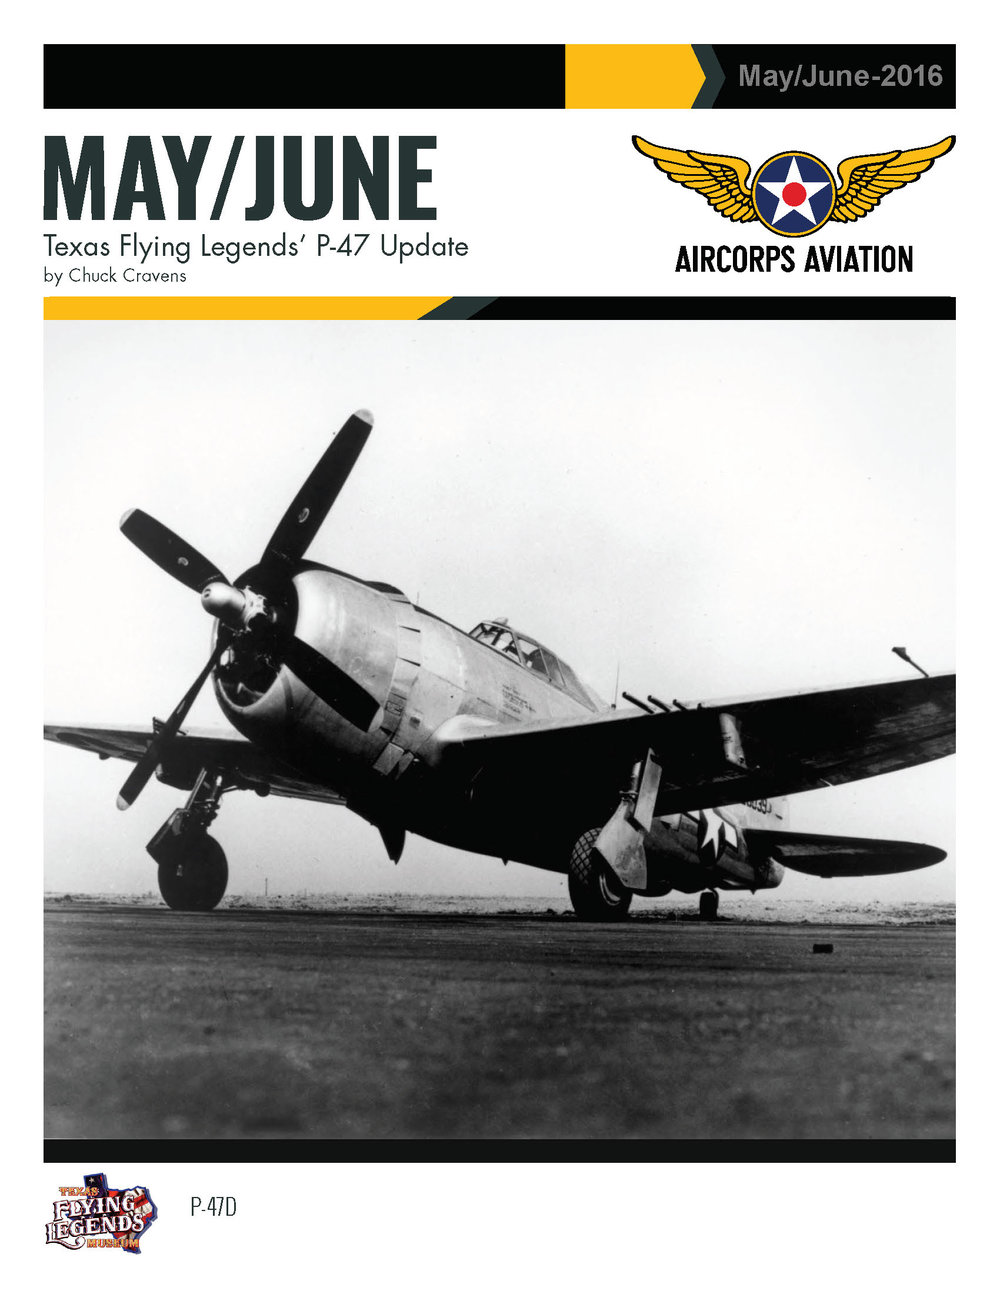 May/June Texas Flying Legends' P-47 Update